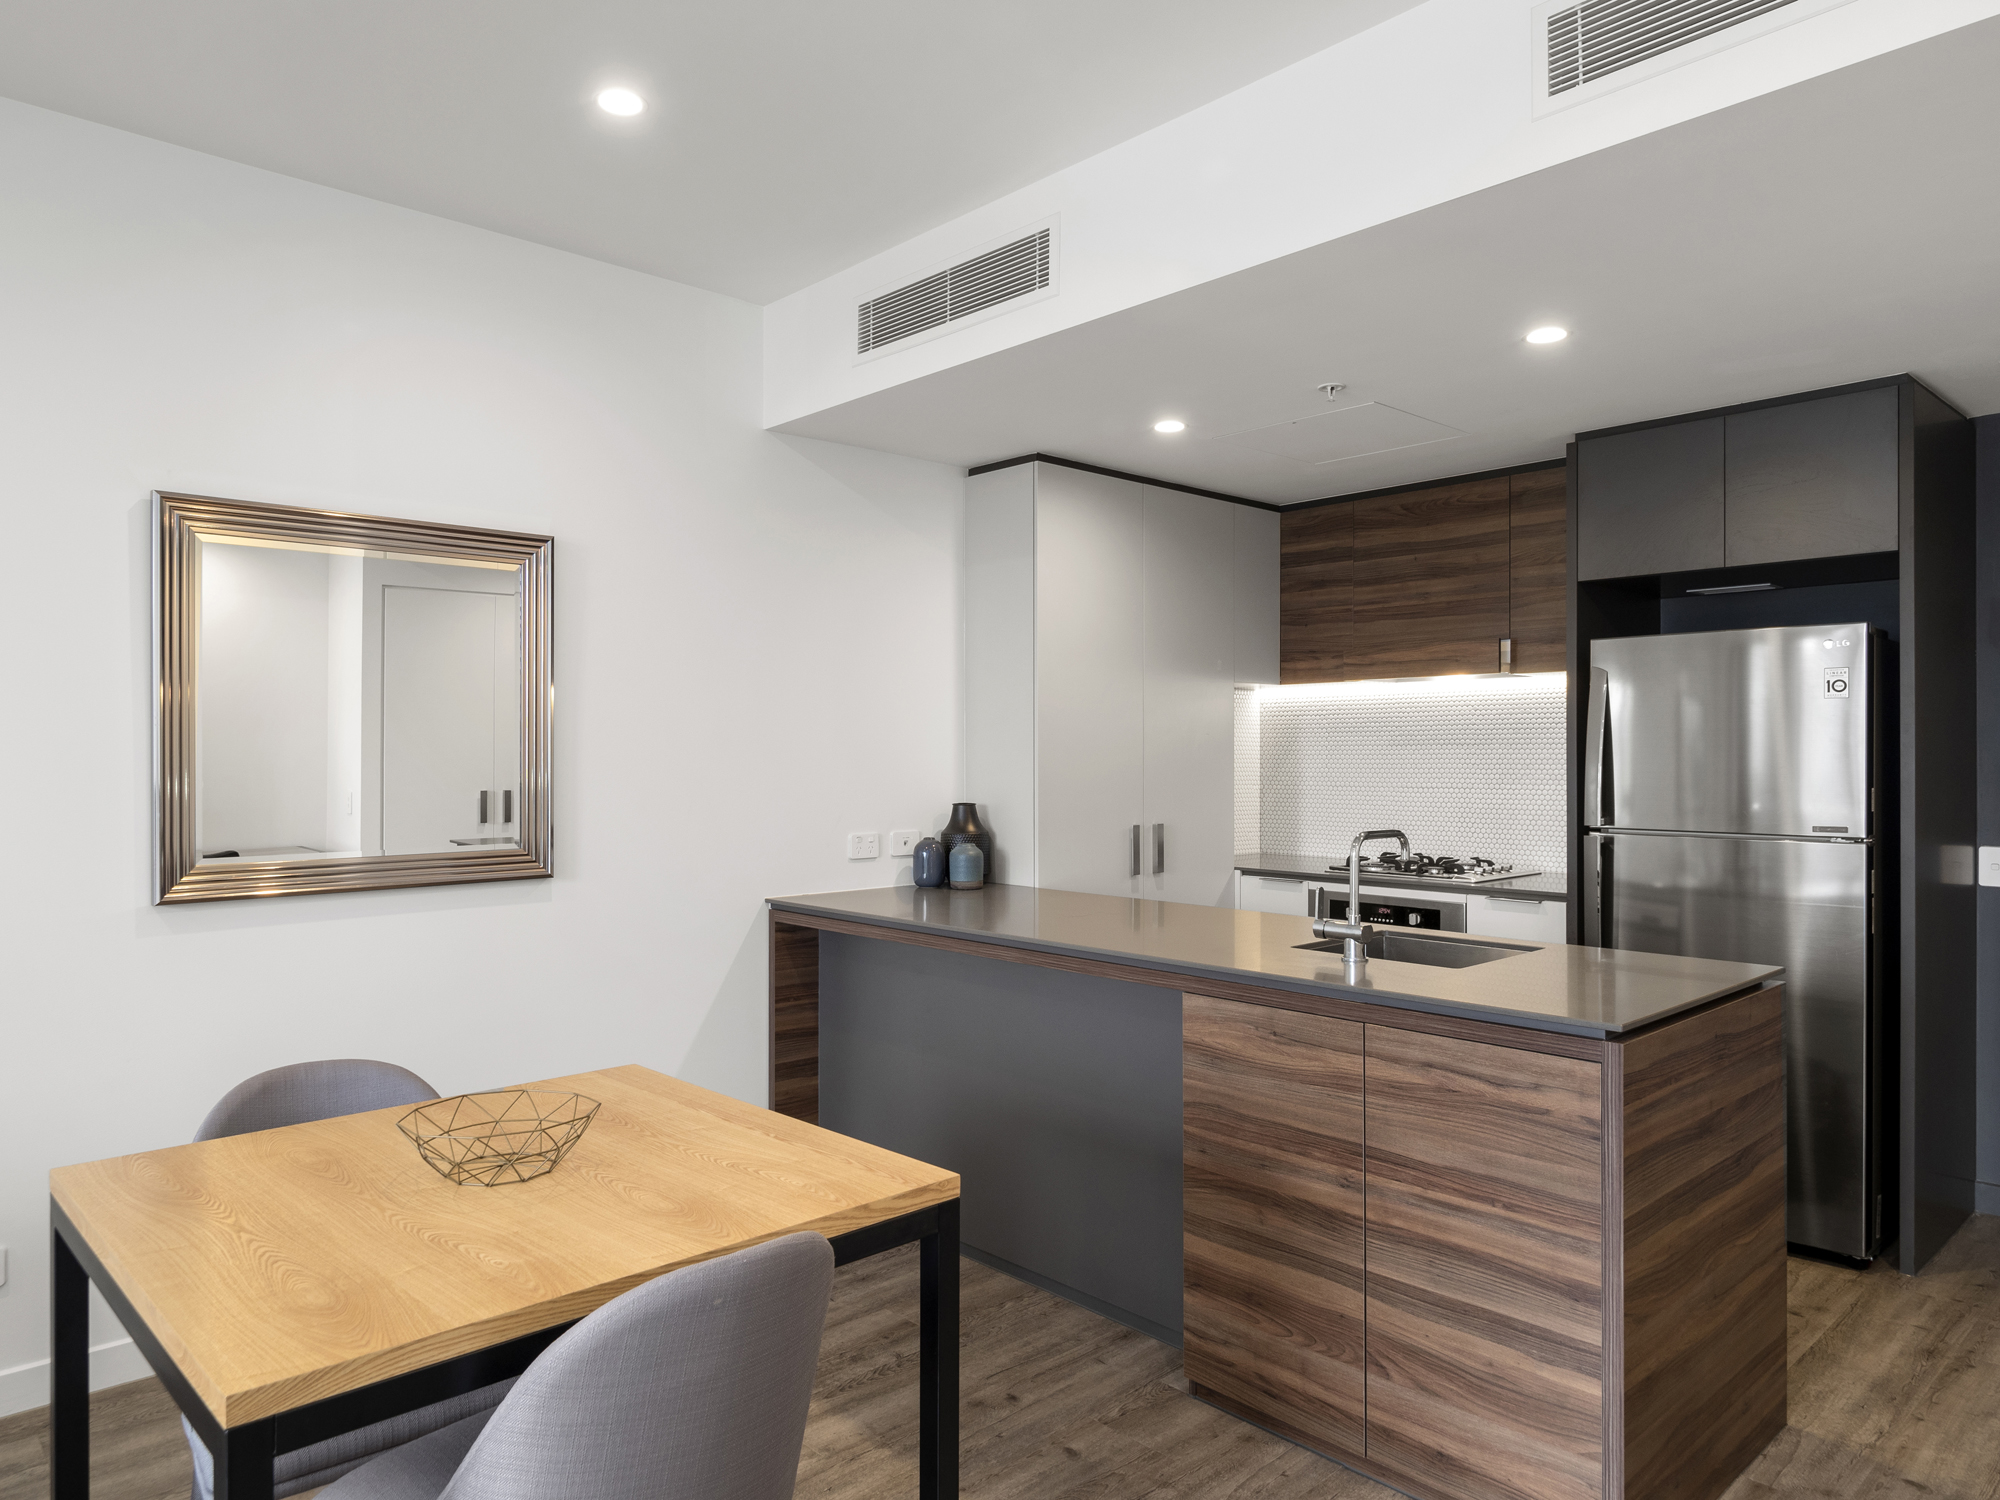 Apartment photography at 38 Hope St South Brisbane